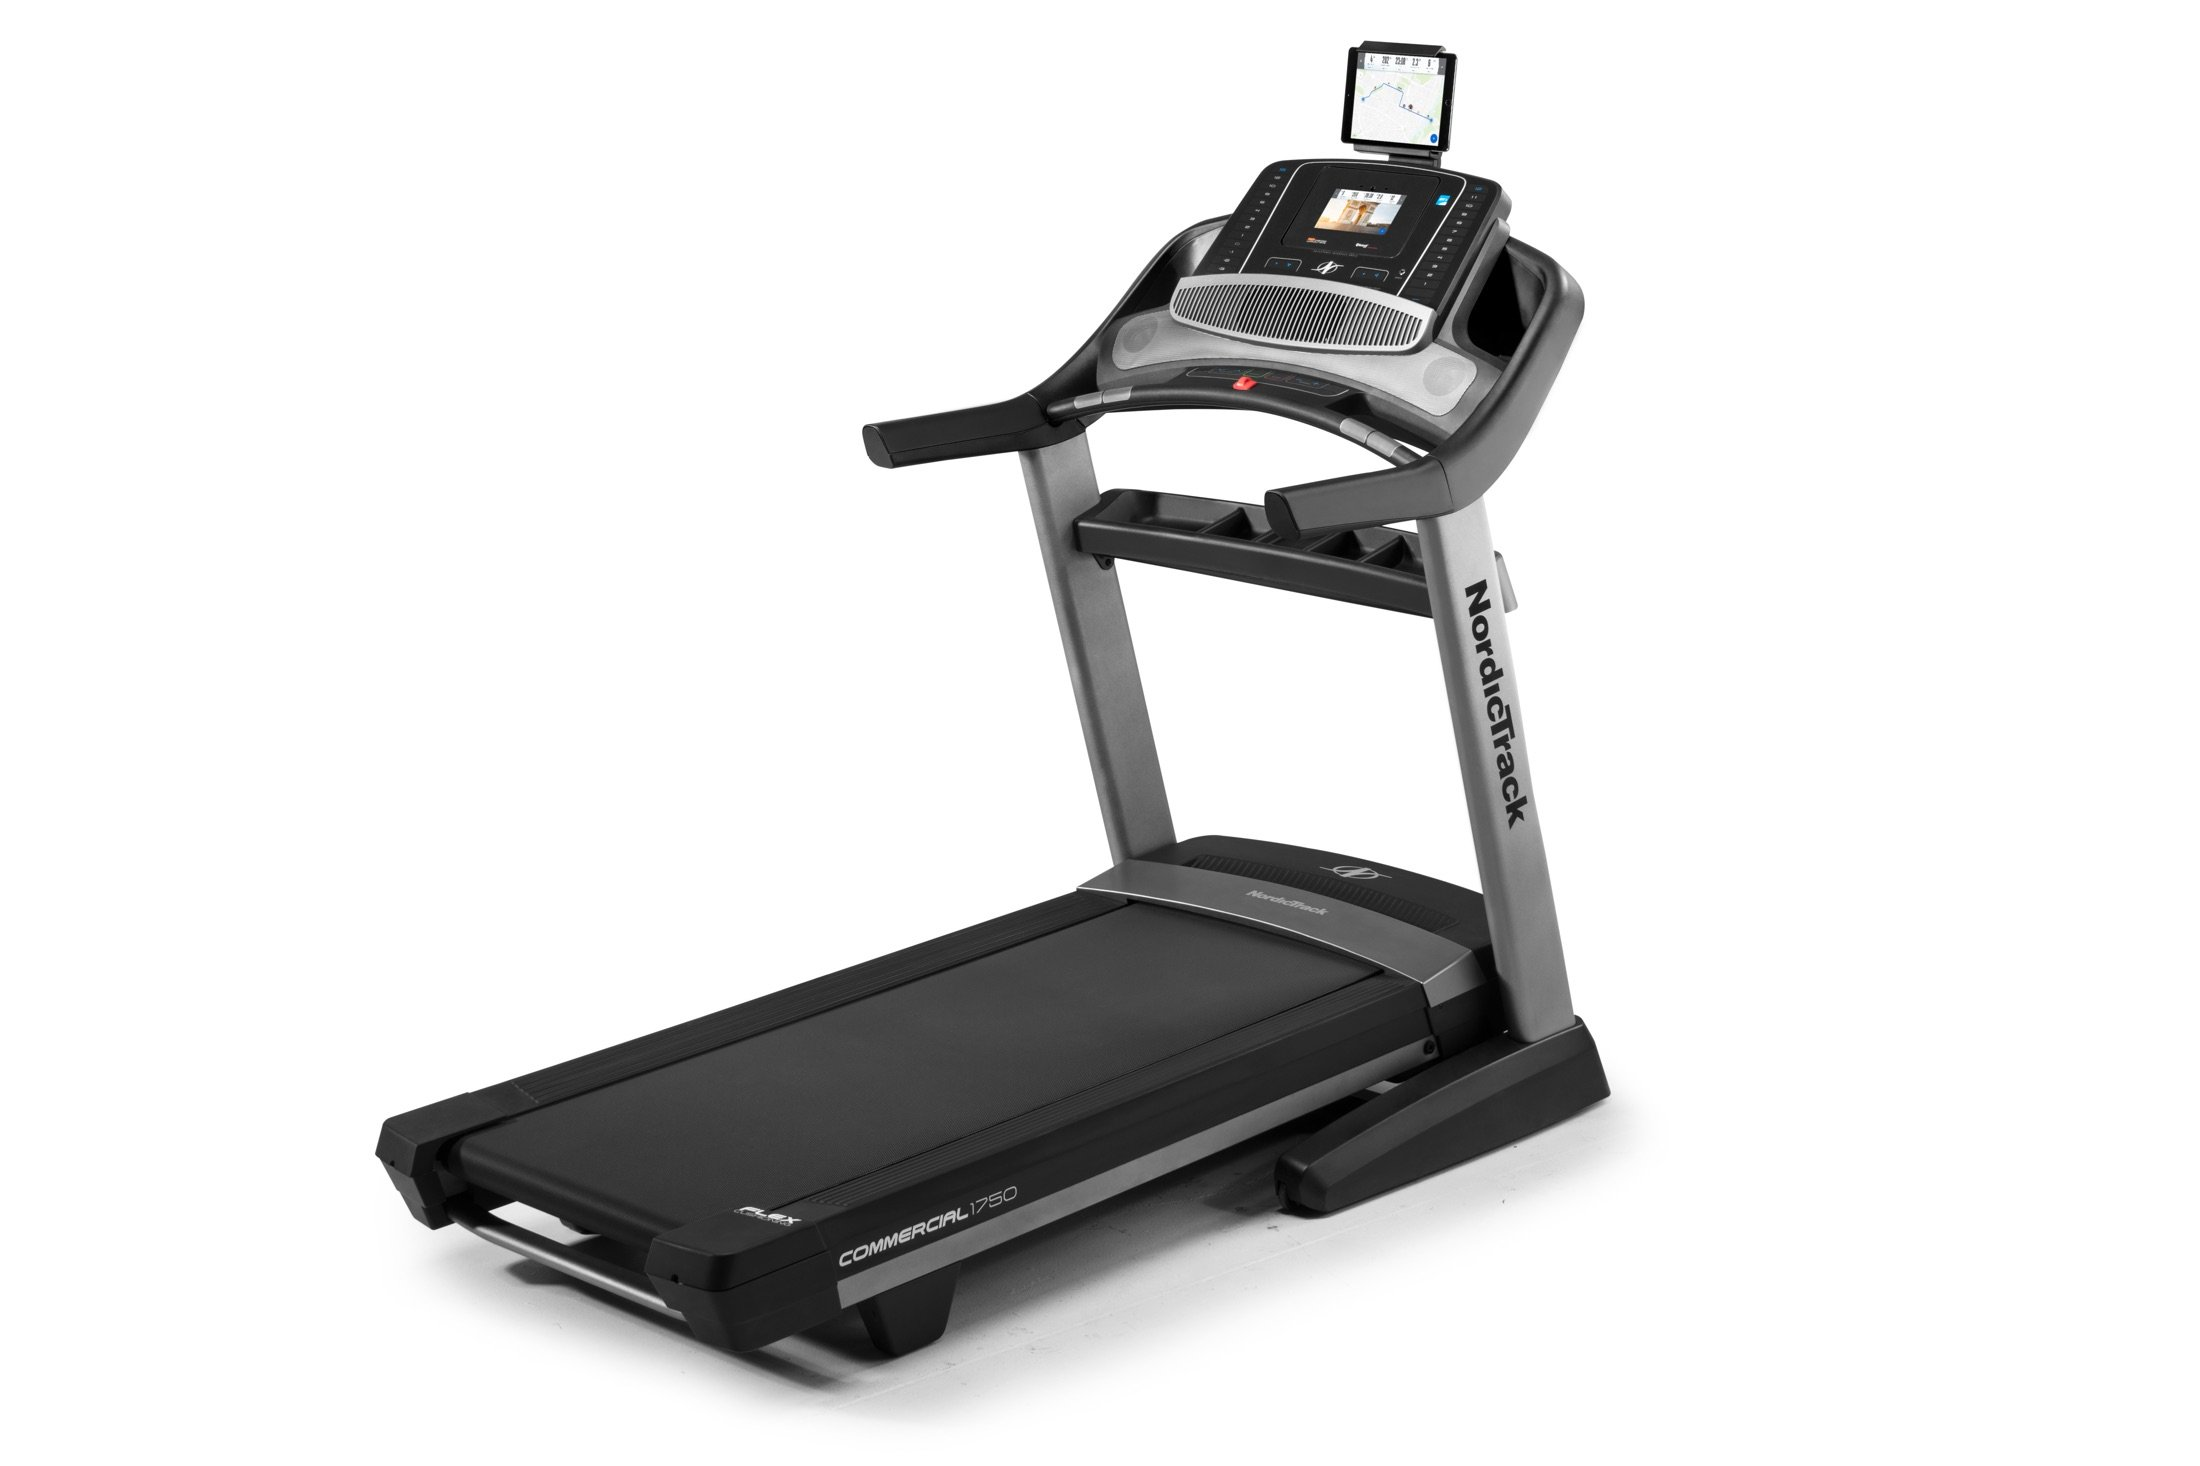 Used Treadmill - NordicTrack Commercial 1750